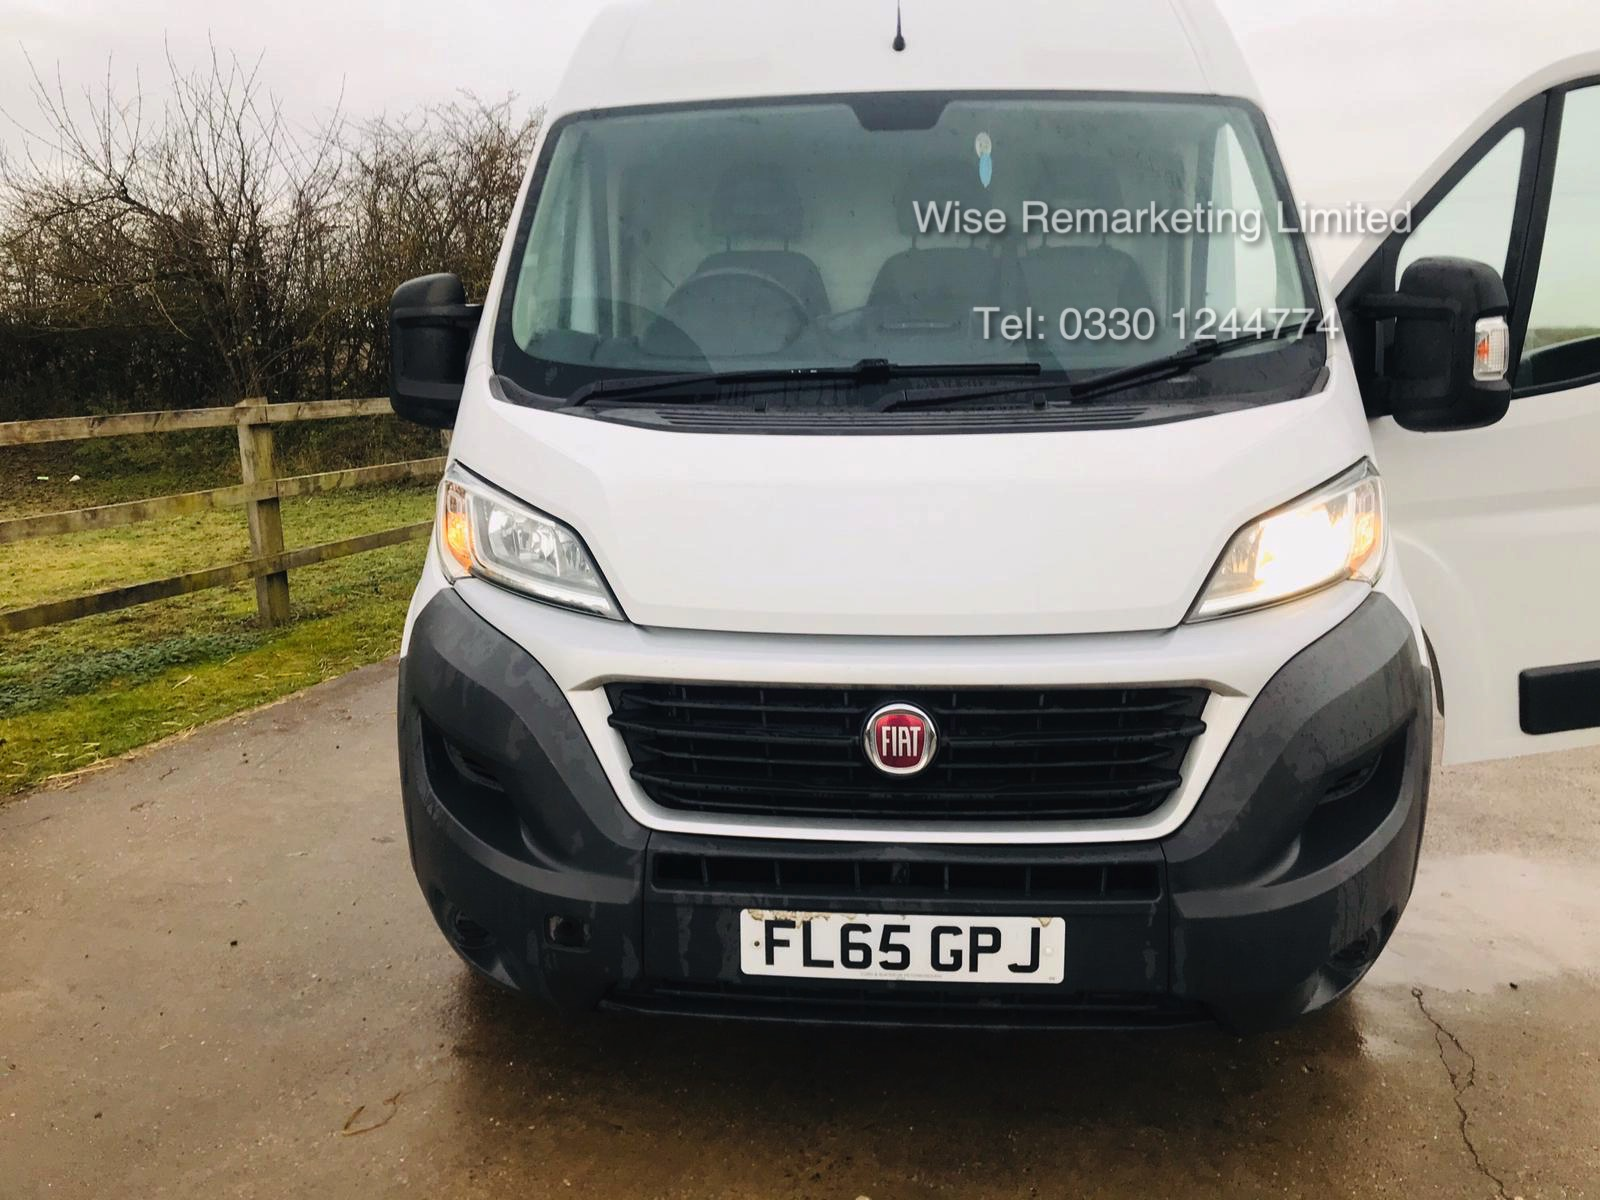 Lot 30 - Fiat Ducato 35 2.3 Multijet - 2016 Model - 6 Speed - 1 Company Owner From New - SAVE 20% NO VAT